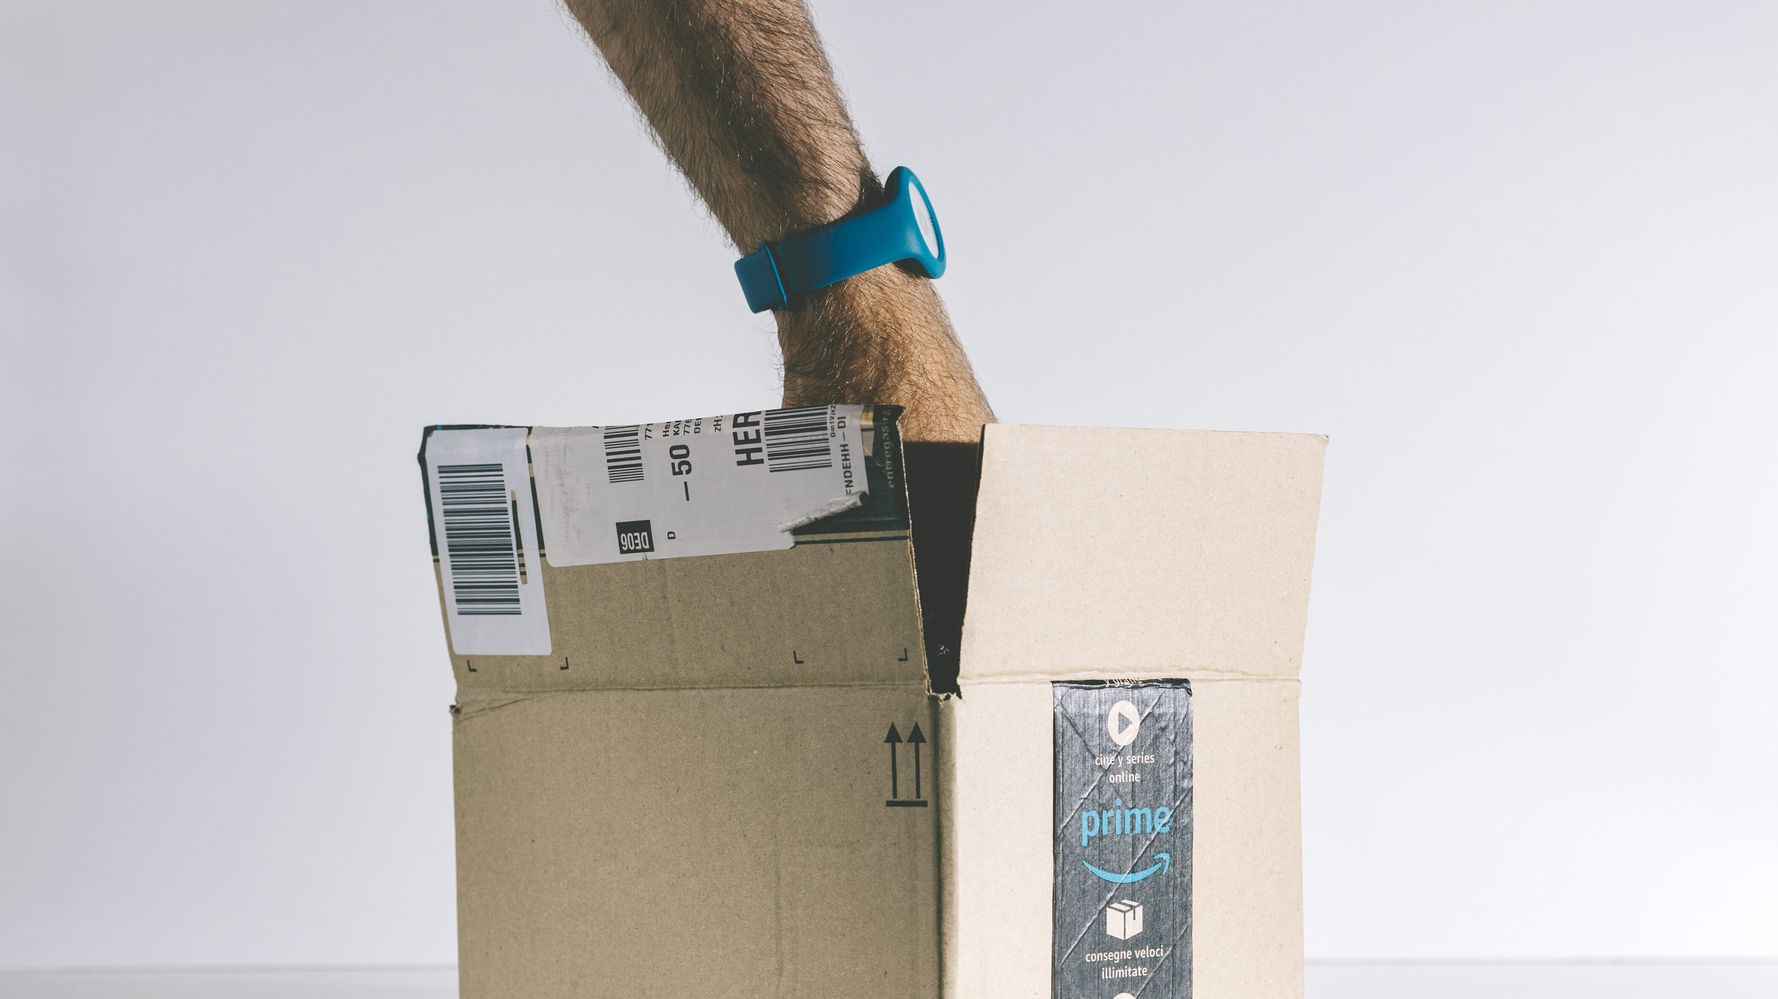 A Complete Roundup To The Best Prime Day 2019 Deals From Amazon And